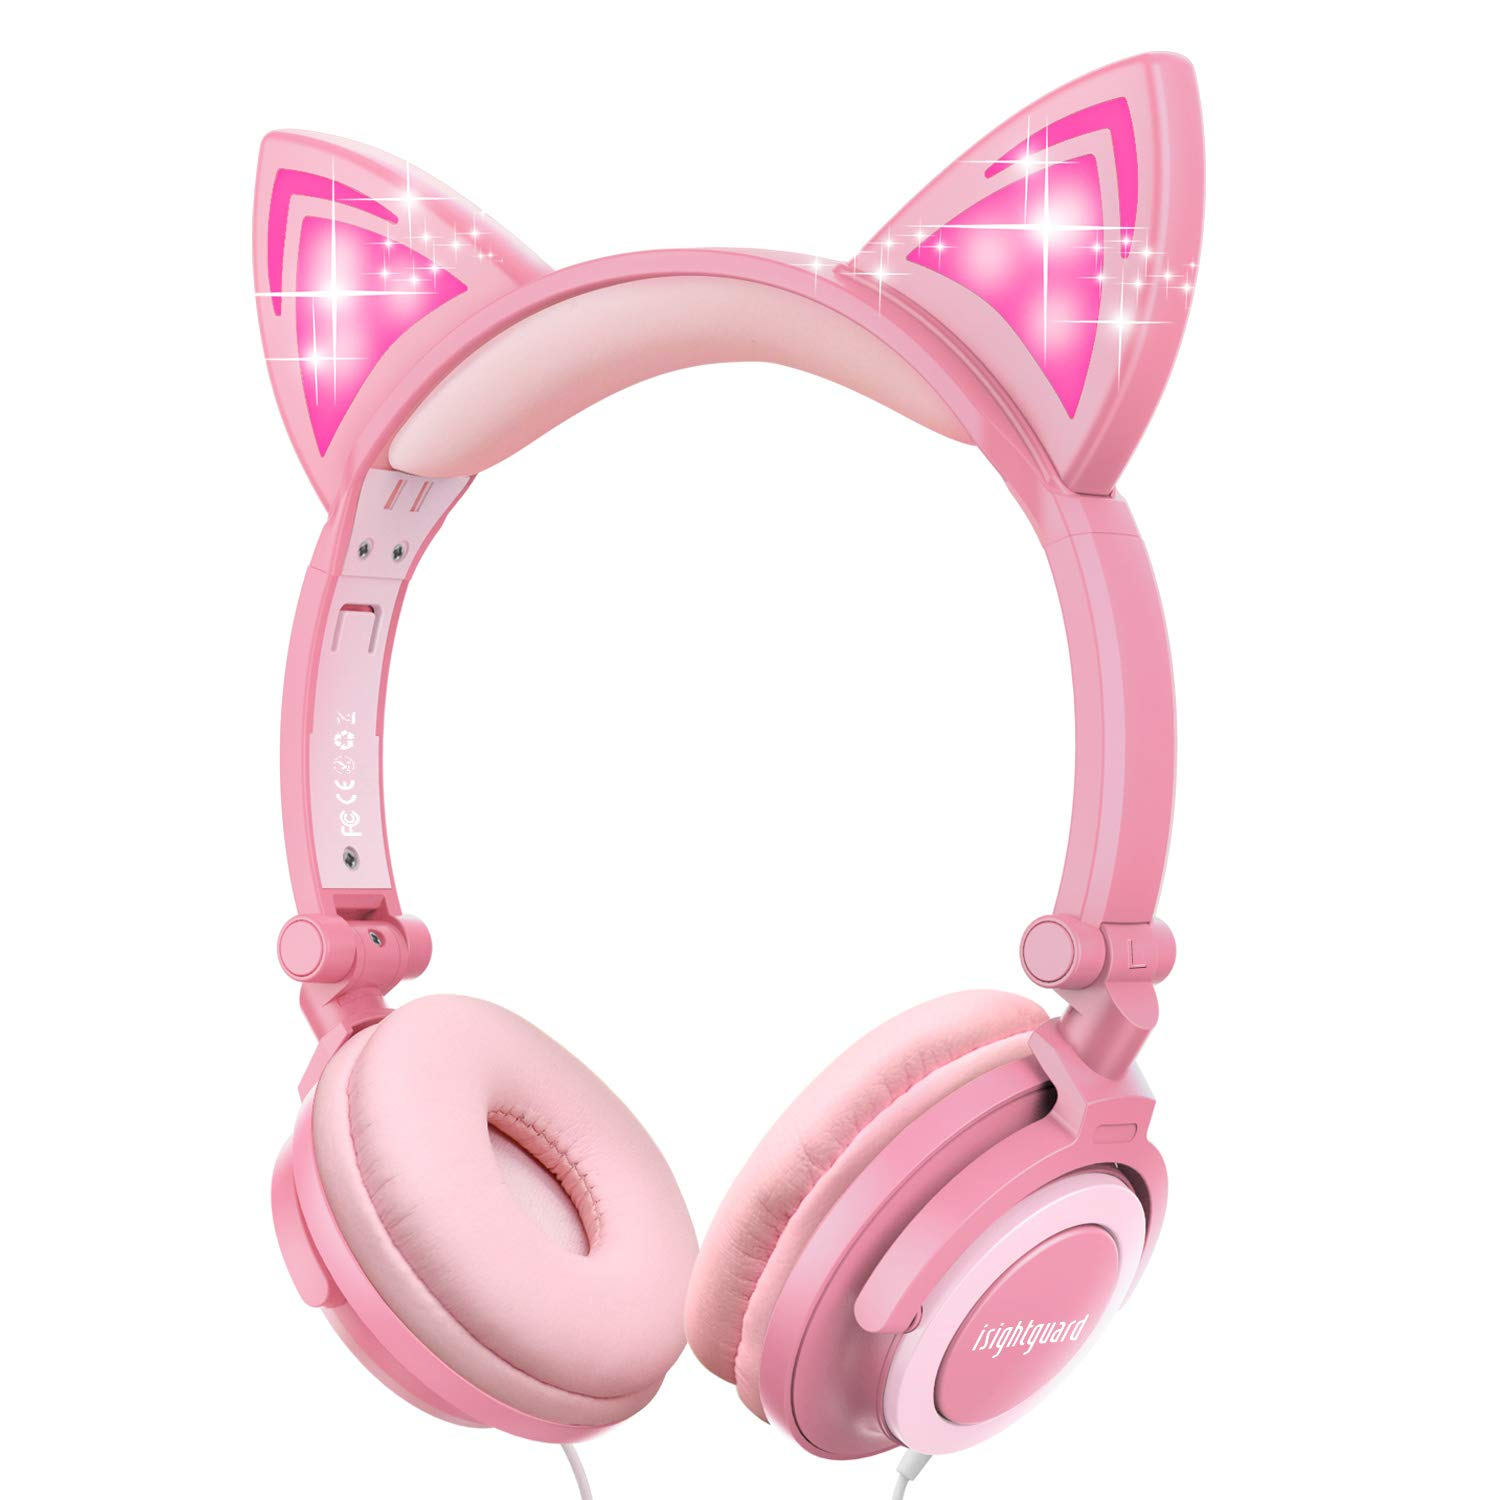 Kids Headphones,Isightguard Wired Headphones On Ear, Cat Ear Headphones with LED for Girls, 3.5mm Audio Jack for Cell Phone,Pink